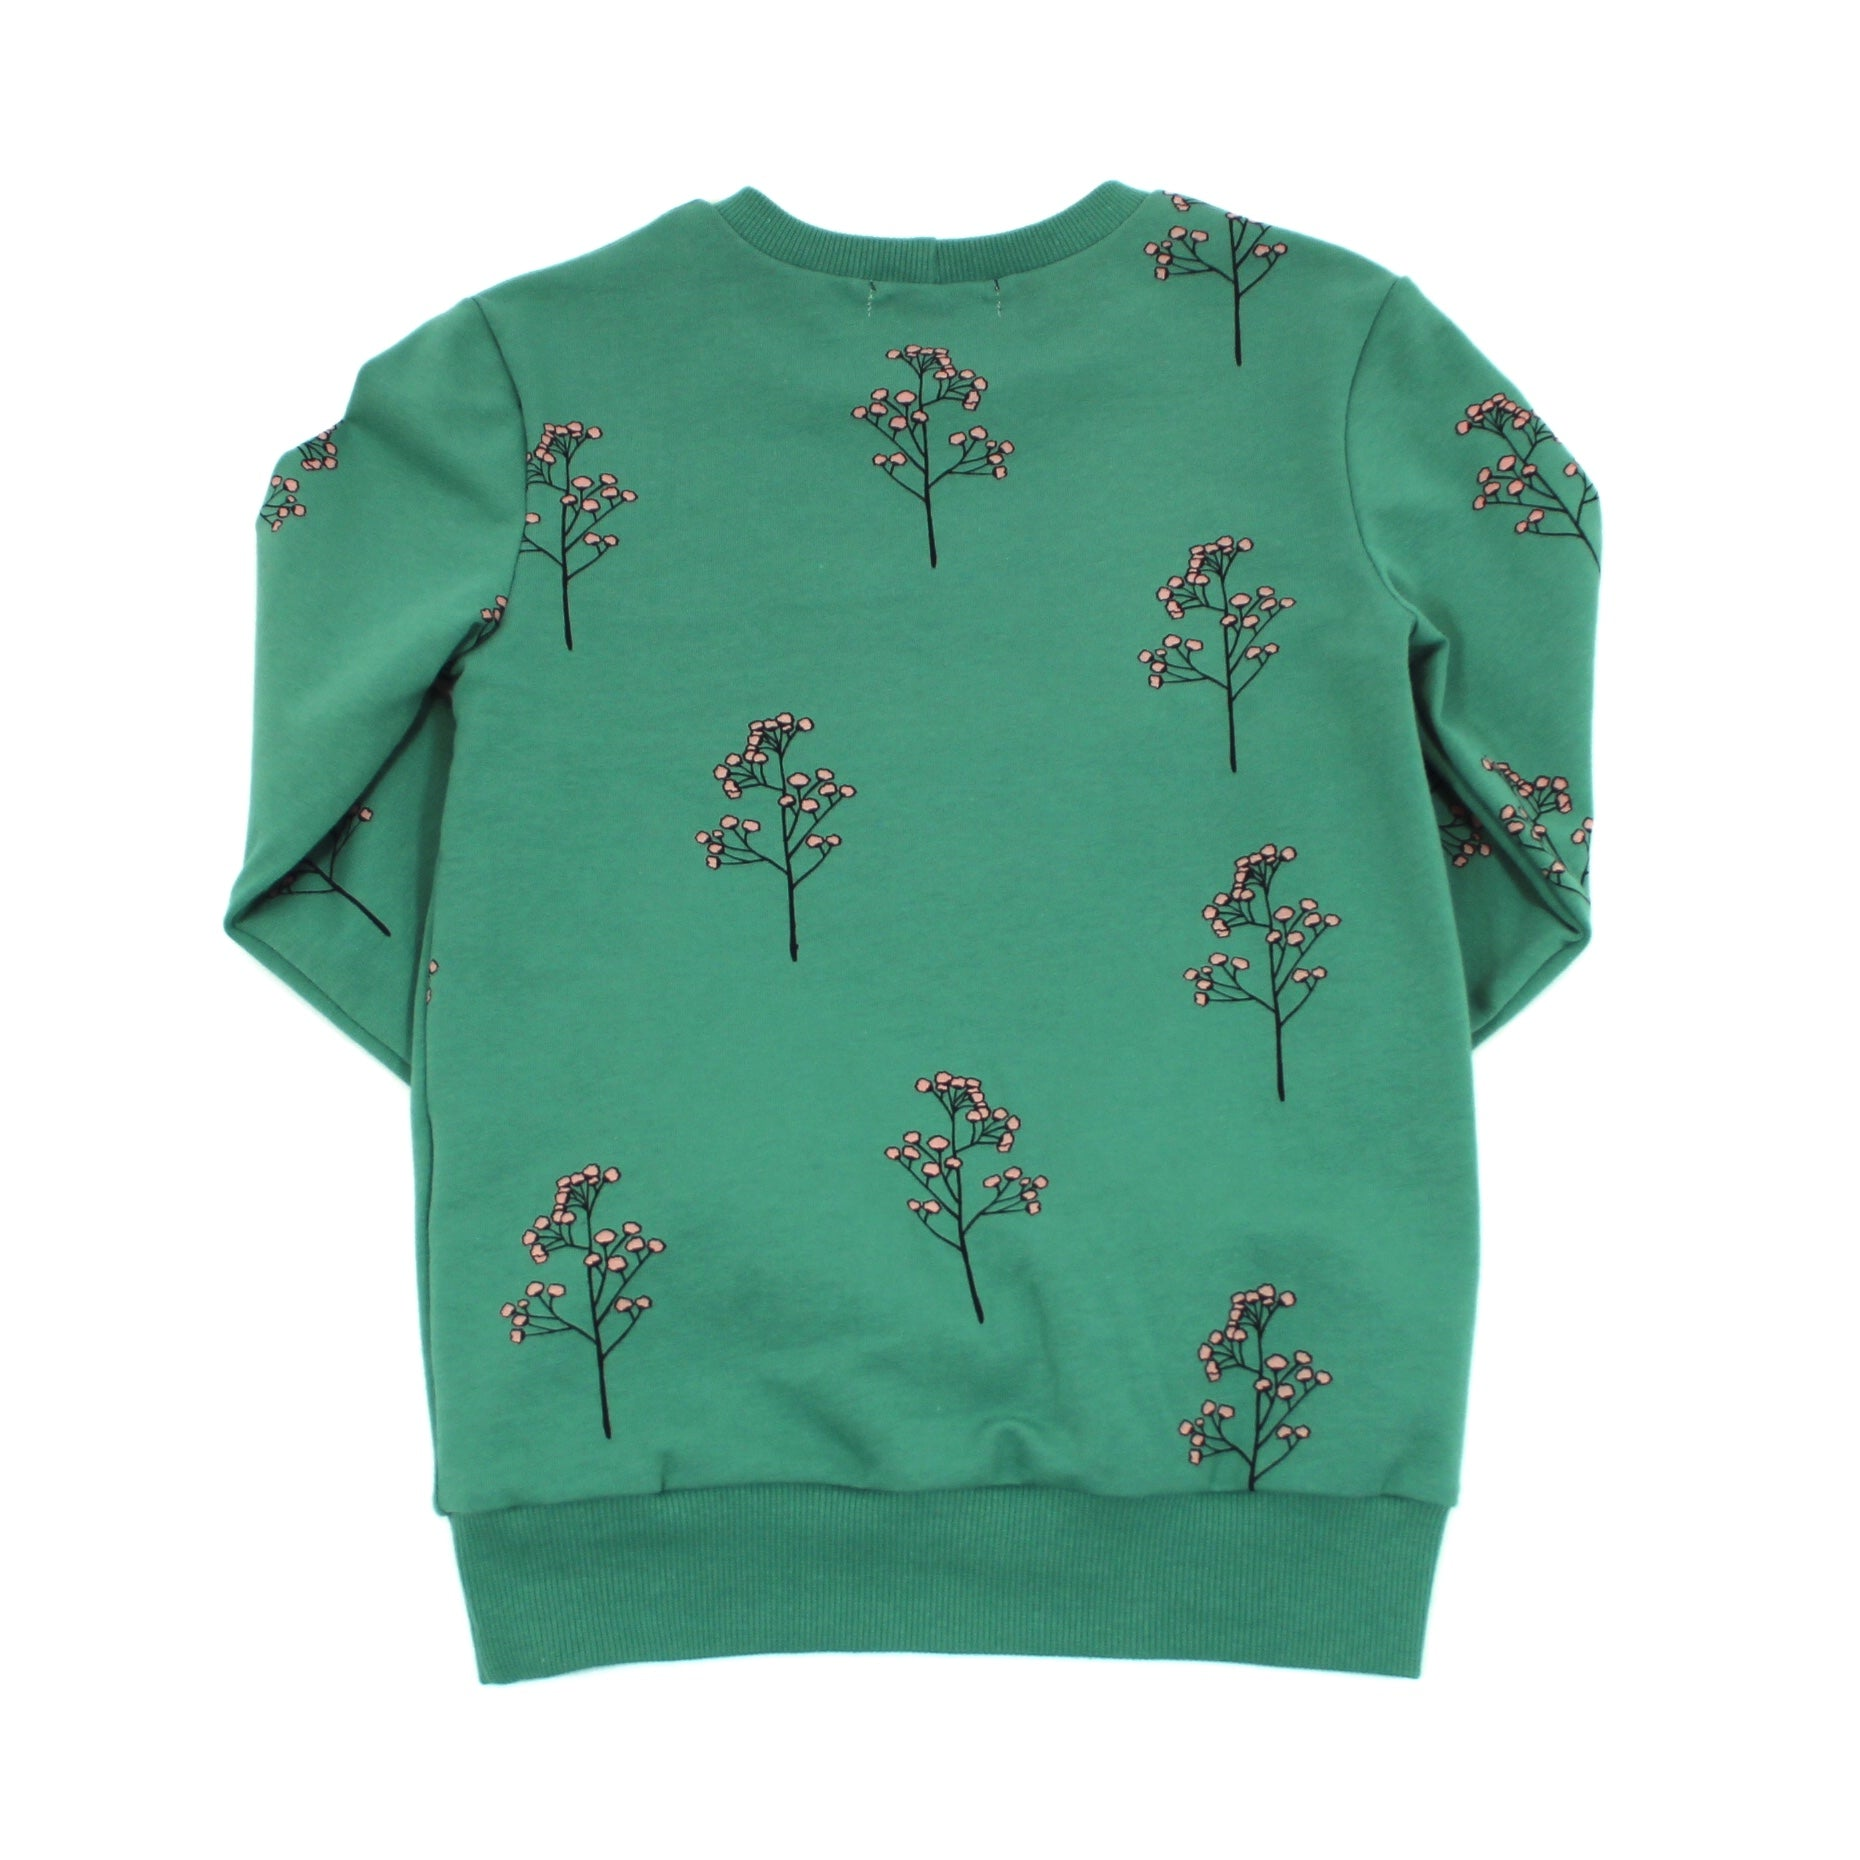 Patoune Sweater Blossom Twigs